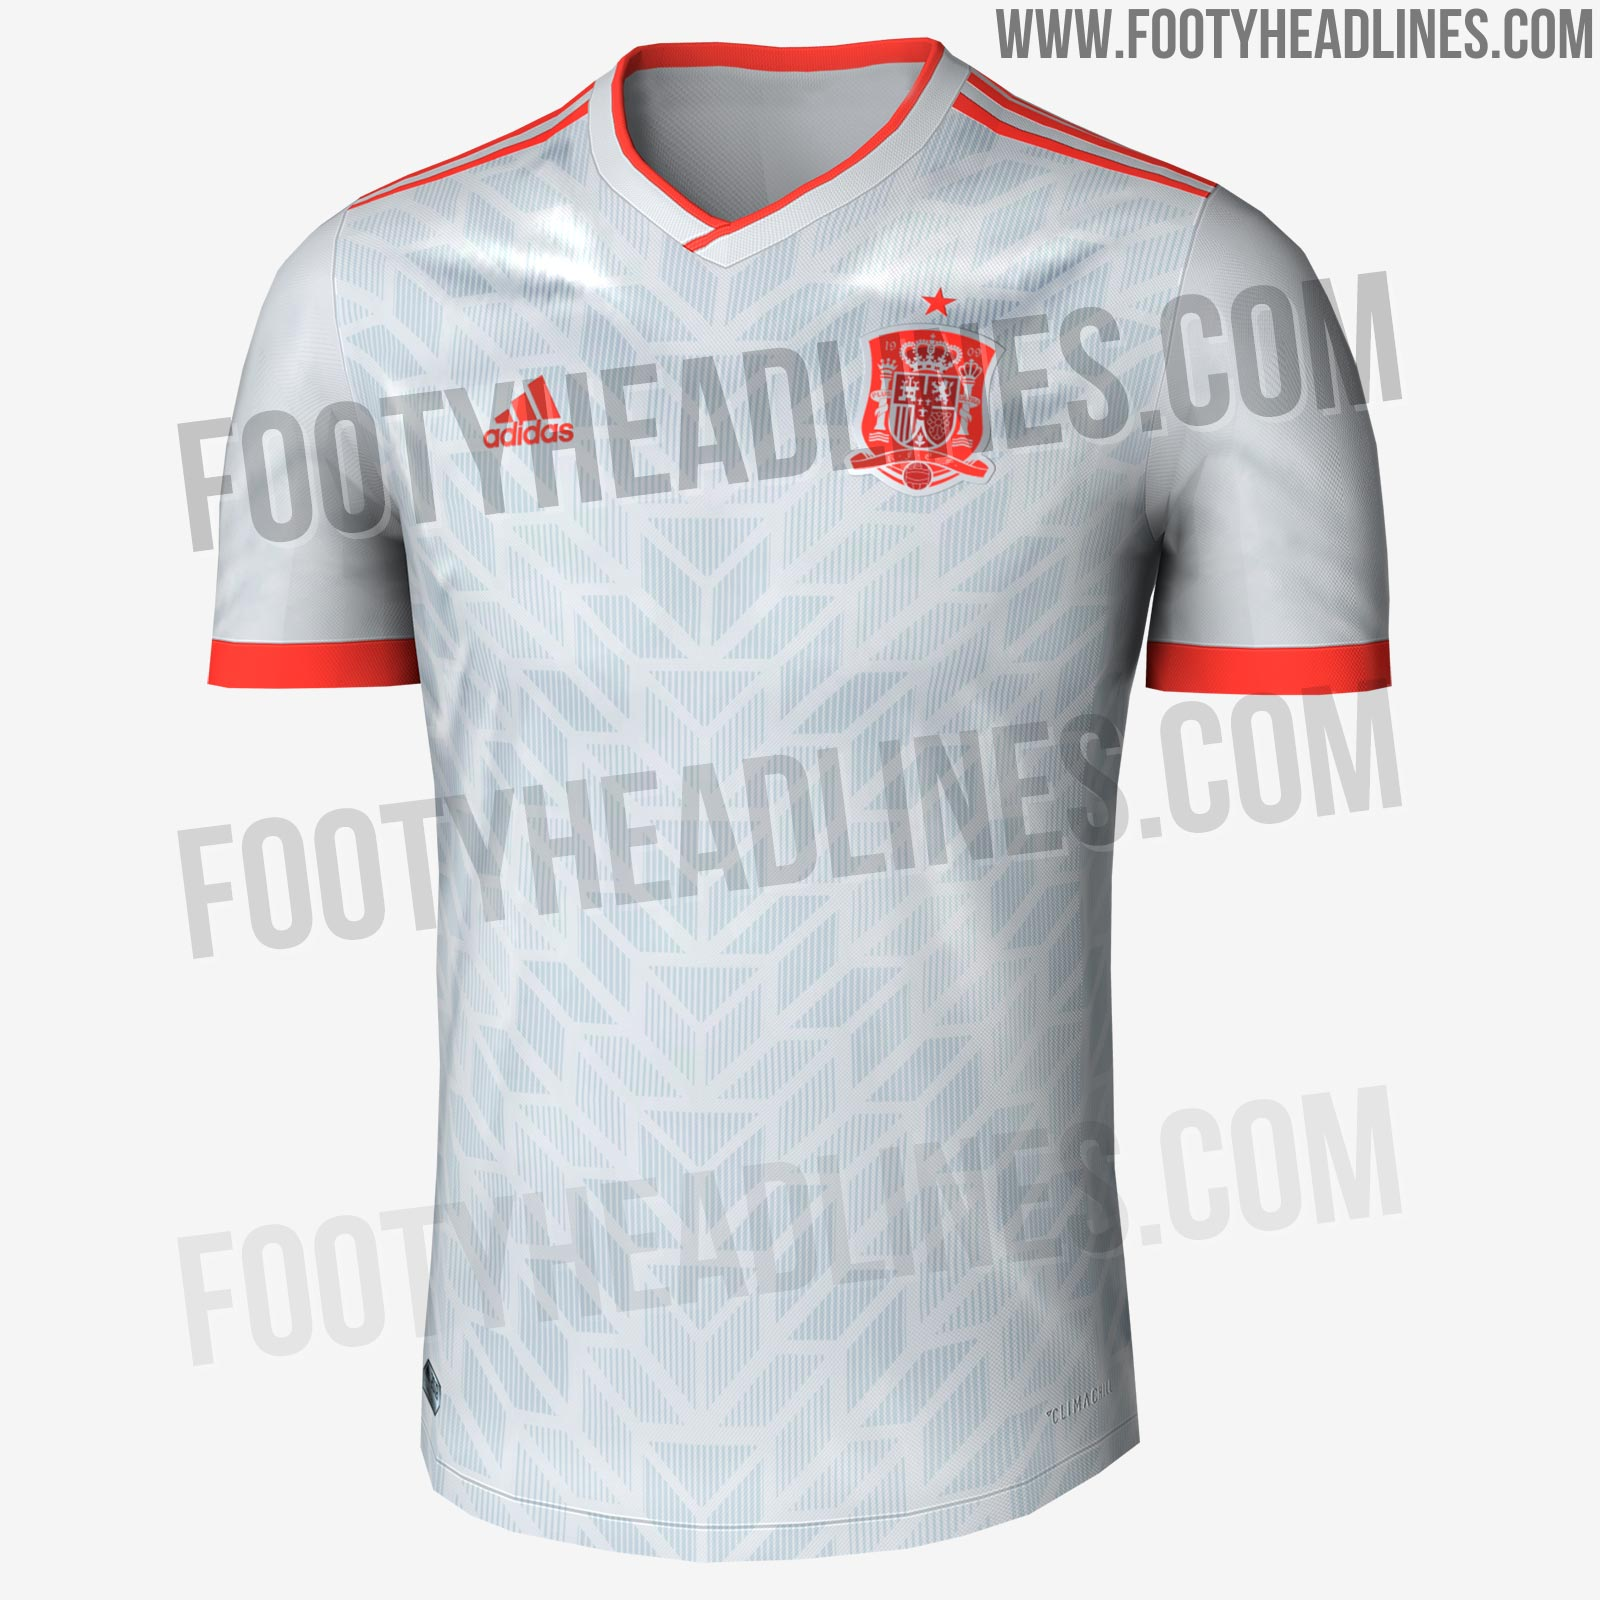 deed5f4c7 Possibly inspired by Spain s light blue jerseys of the past